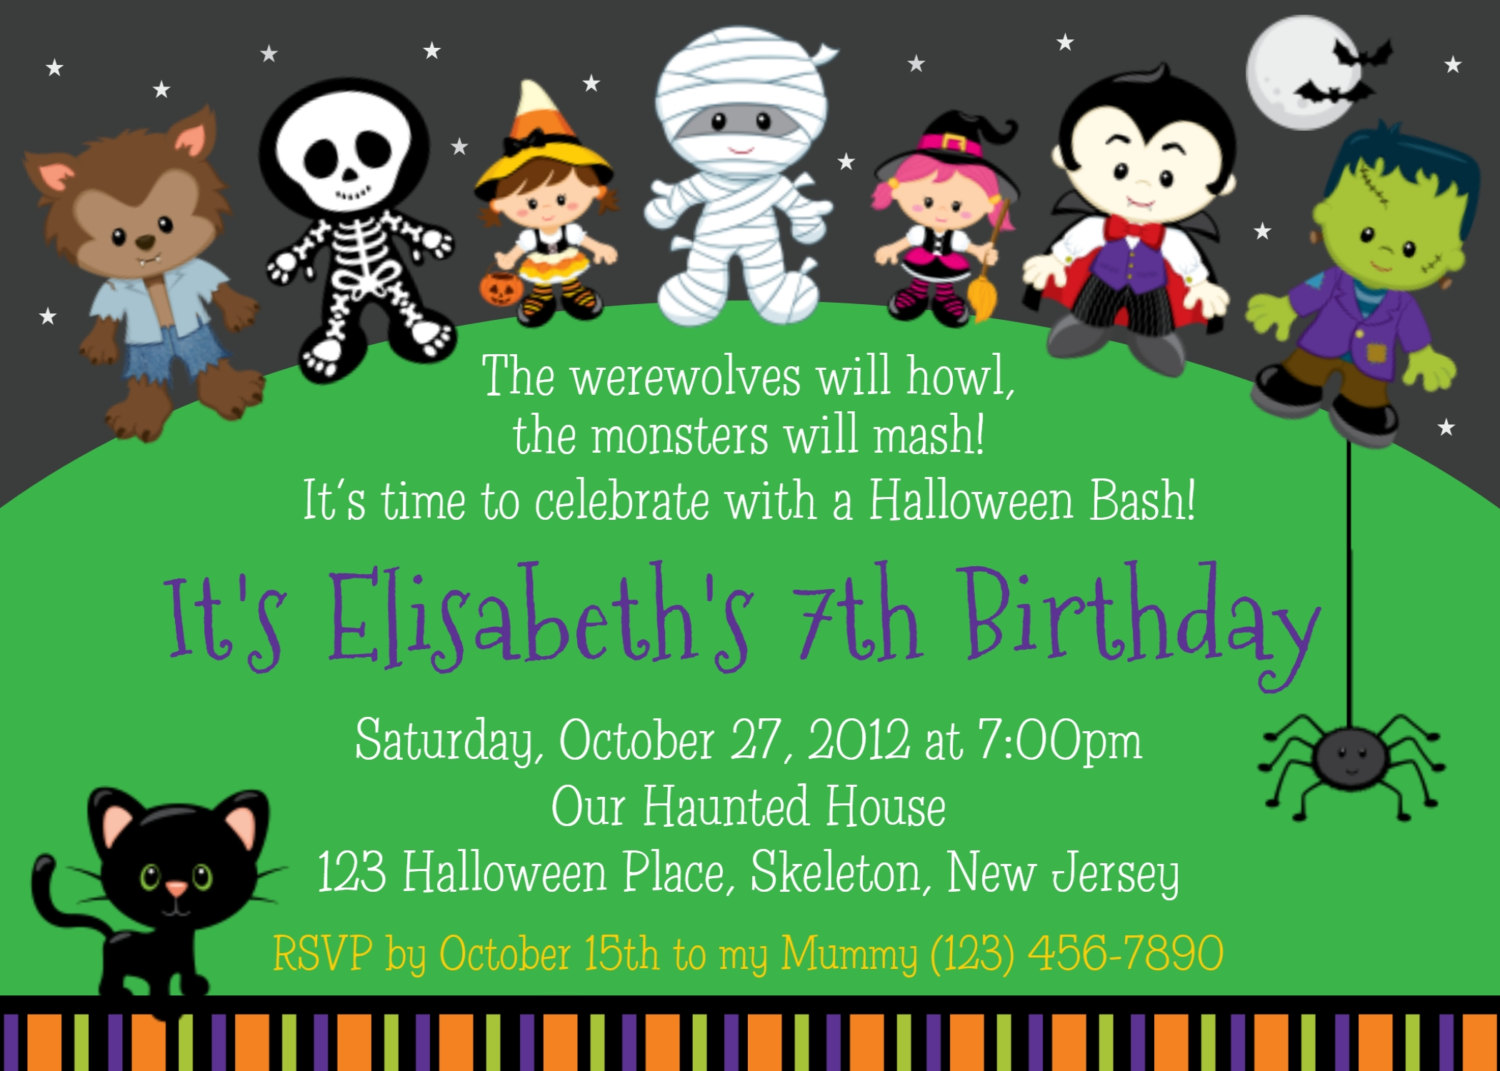 halloween themed birthday party invitation wording ; Attractive-Halloween-Birthday-Party-Invitations-To-Create-Your-Own-Birthday-Invitation-Cards